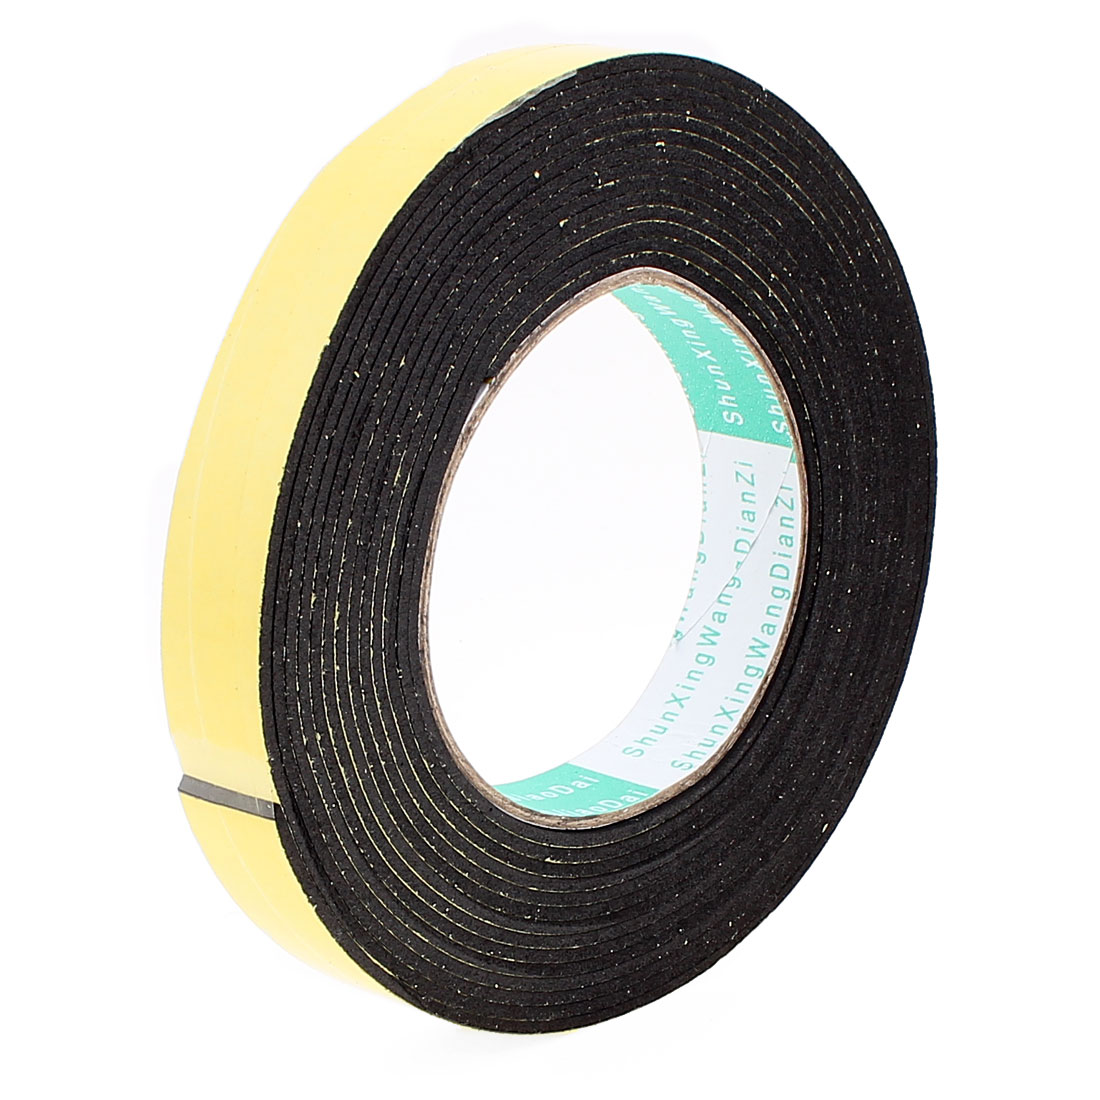 5 Meters 20mm x 2mm Single Side Adhesive EVA Foam Sealing Tap